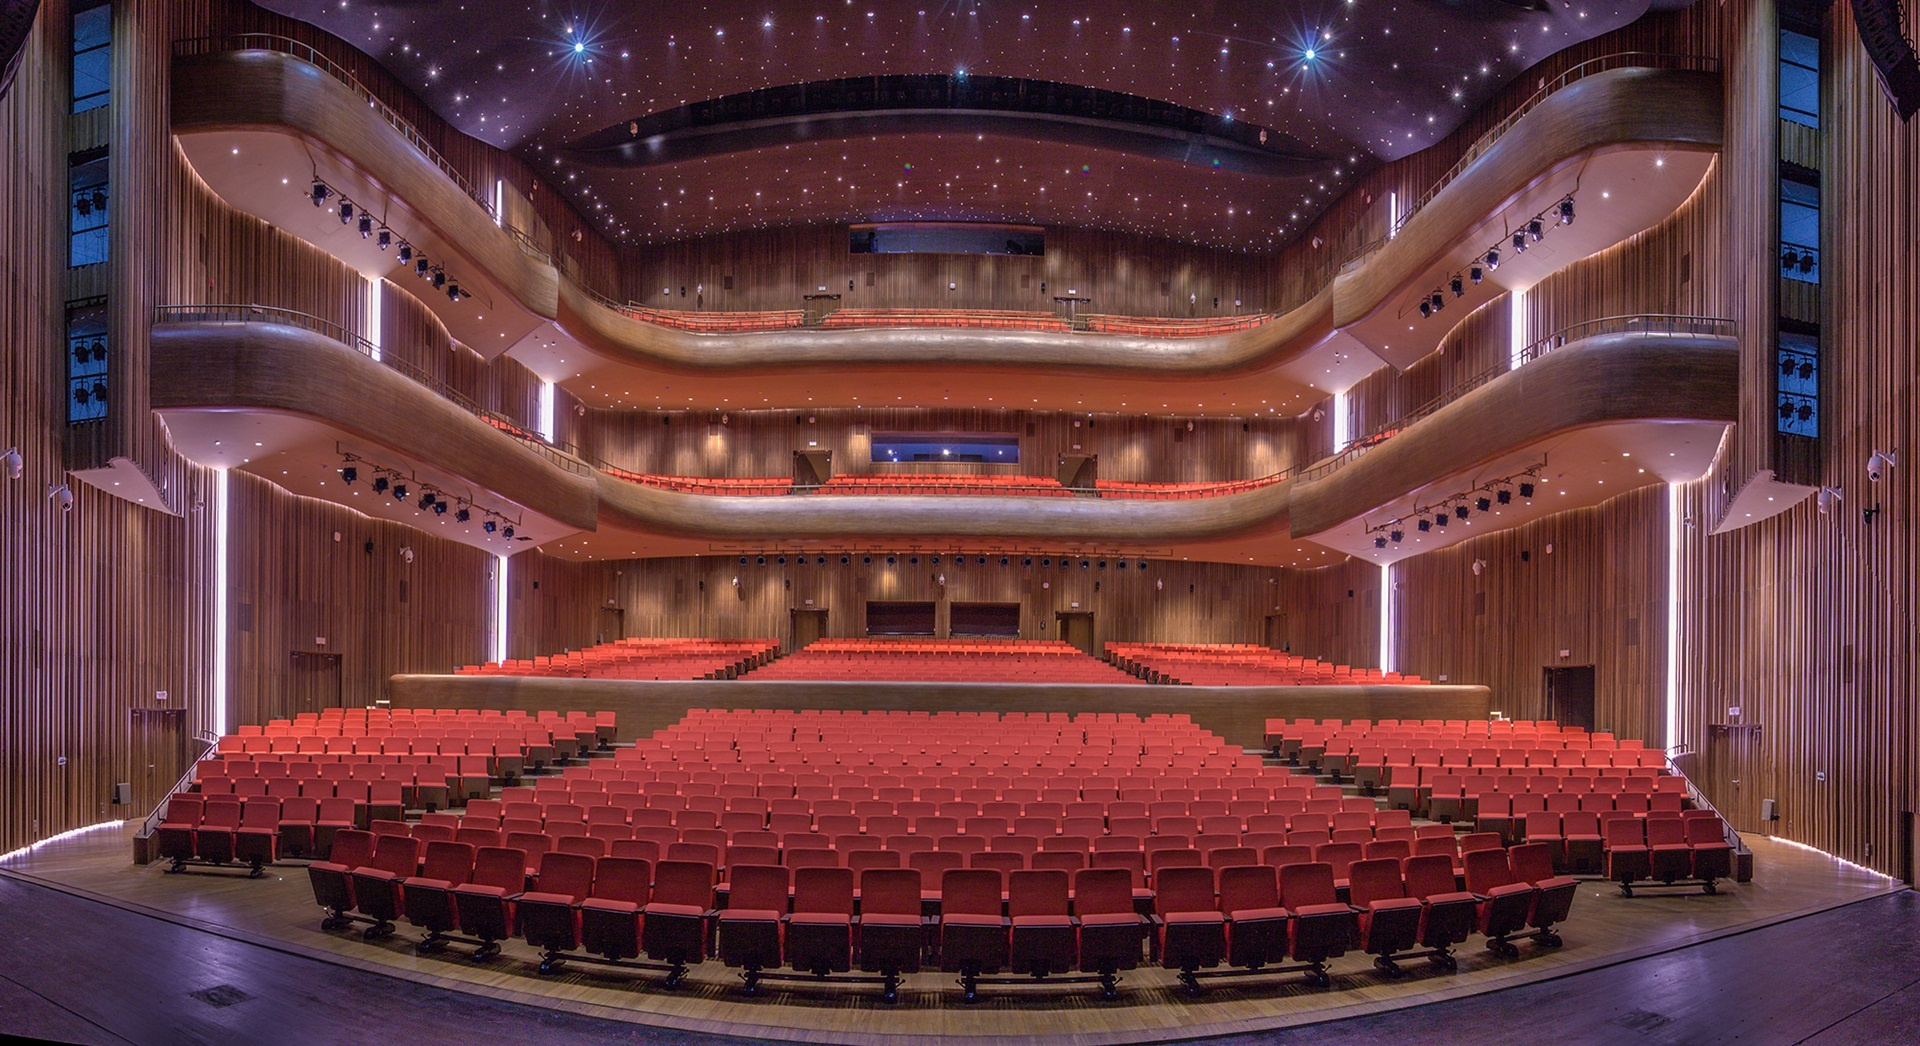 Shaanxi Grand Theater, China featured image